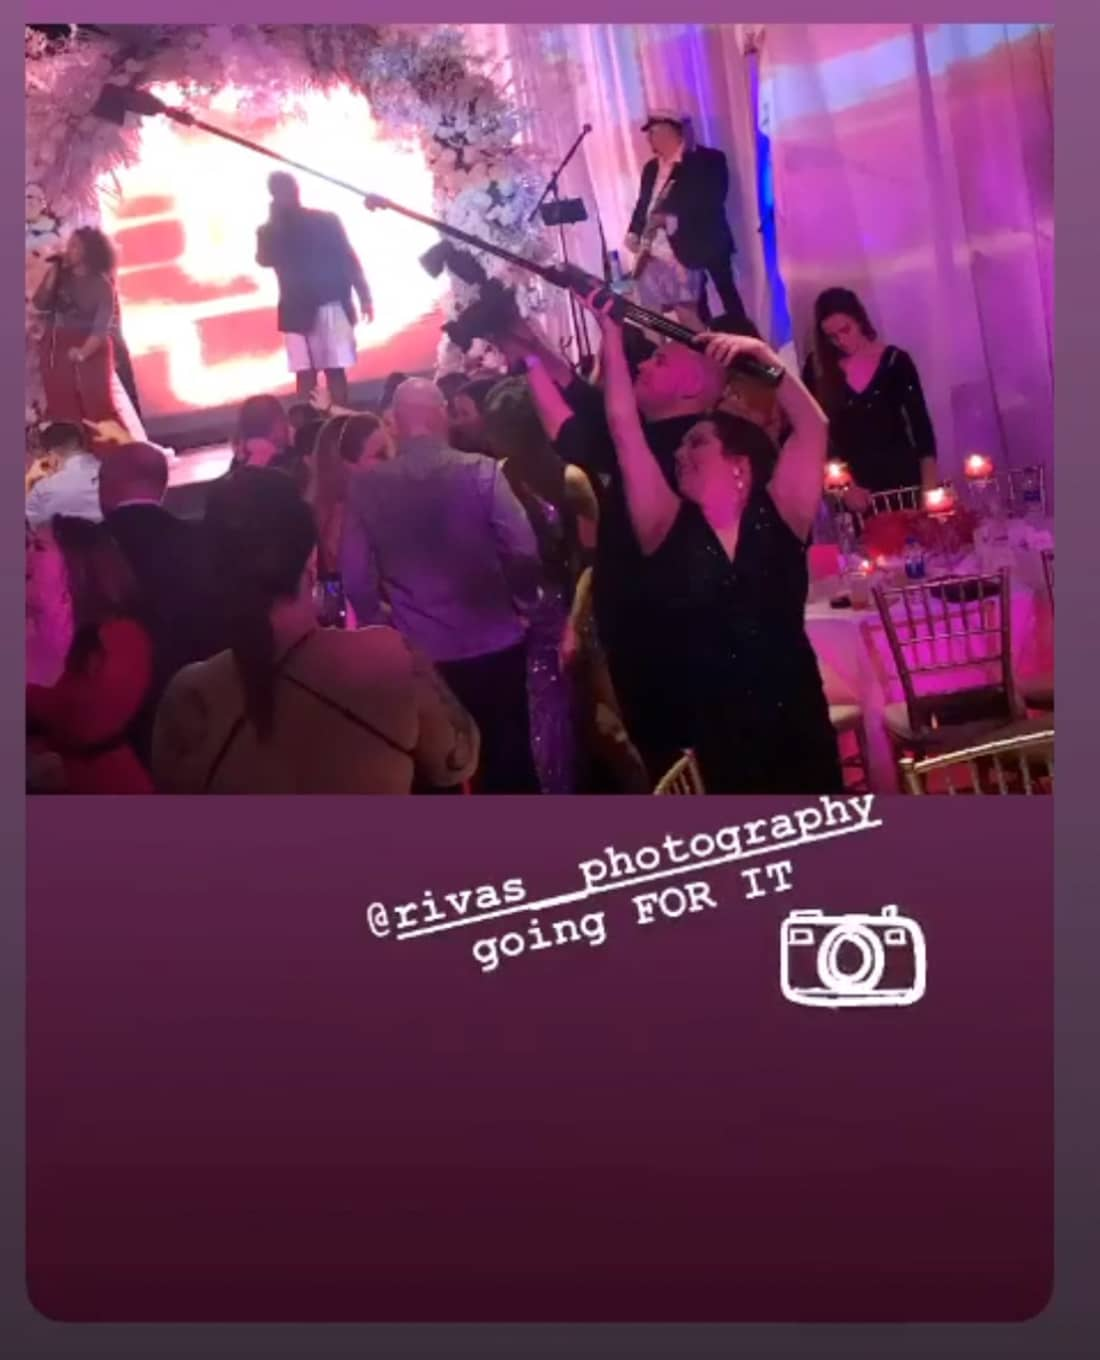 A screenshot of an Instagram post of two photographers in the middle of a crowd, holding camera and lightstand up.